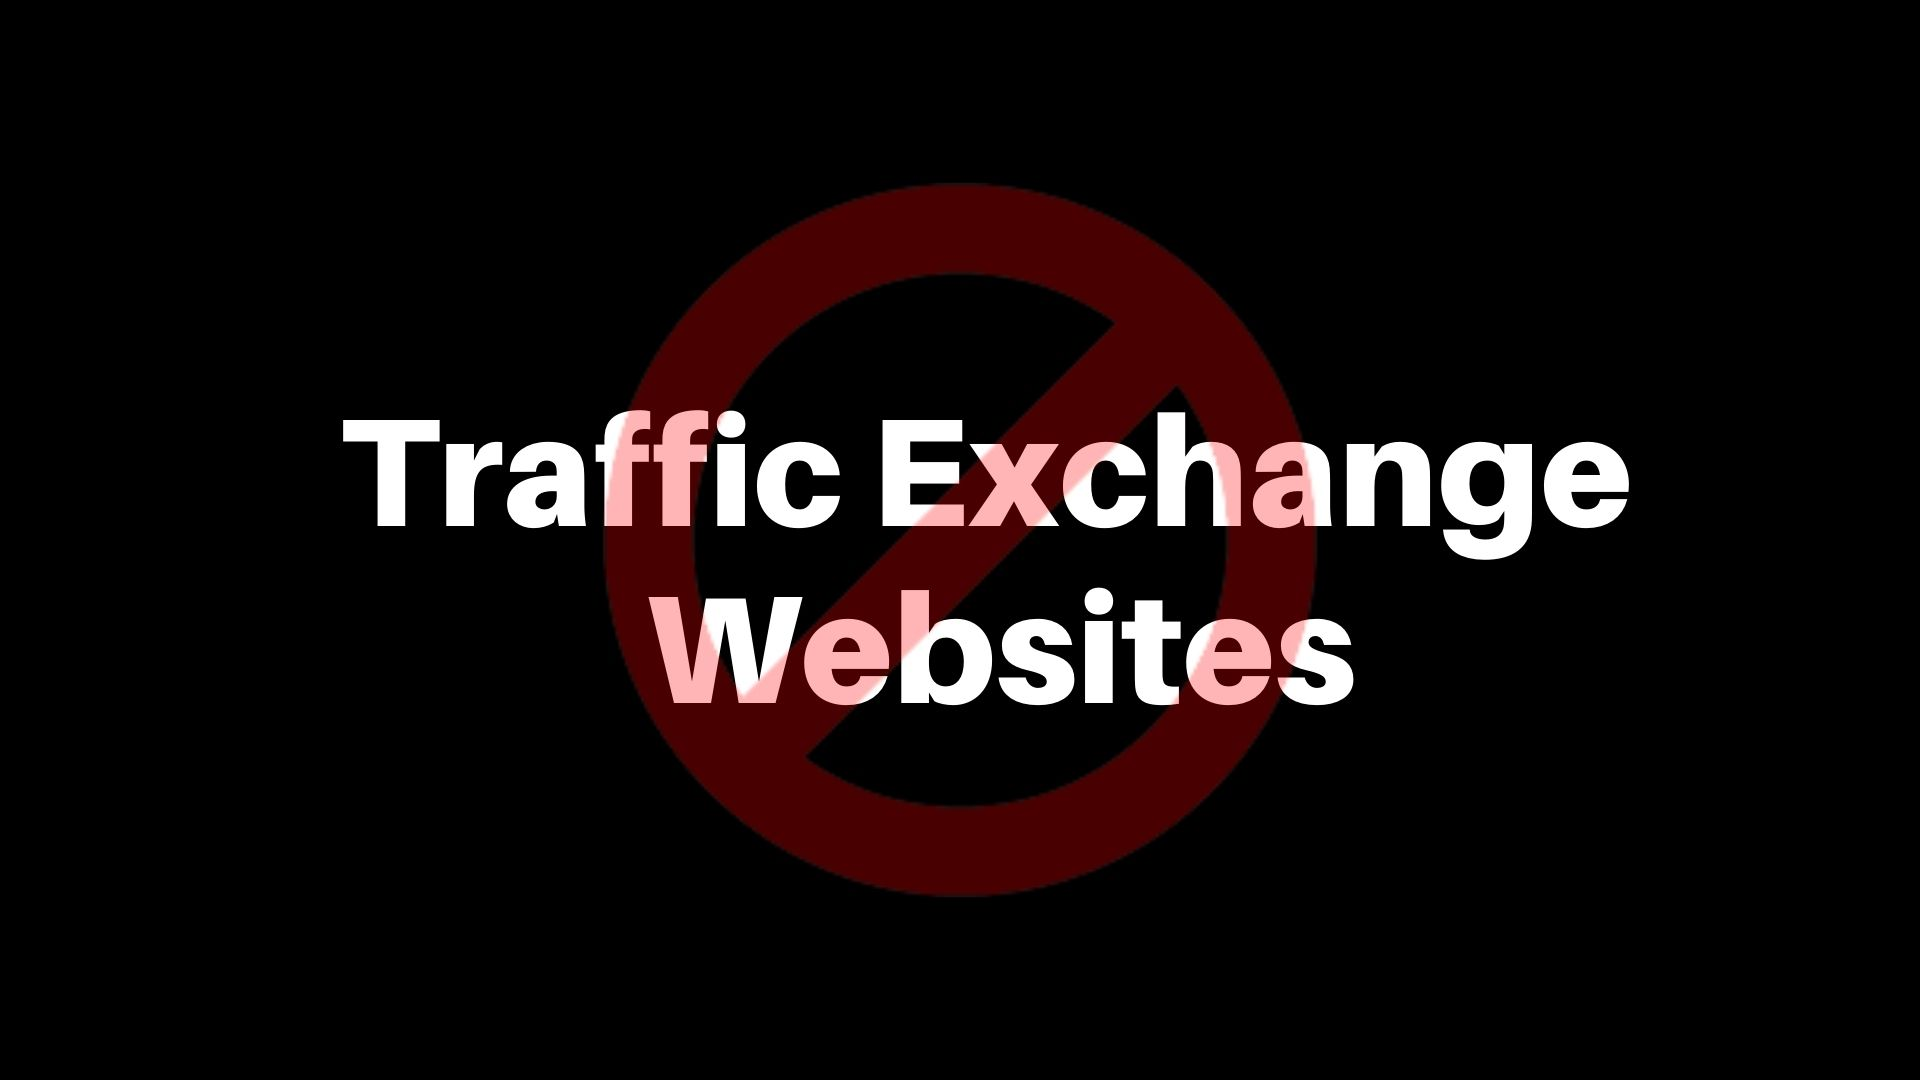 Traffic Exchange services